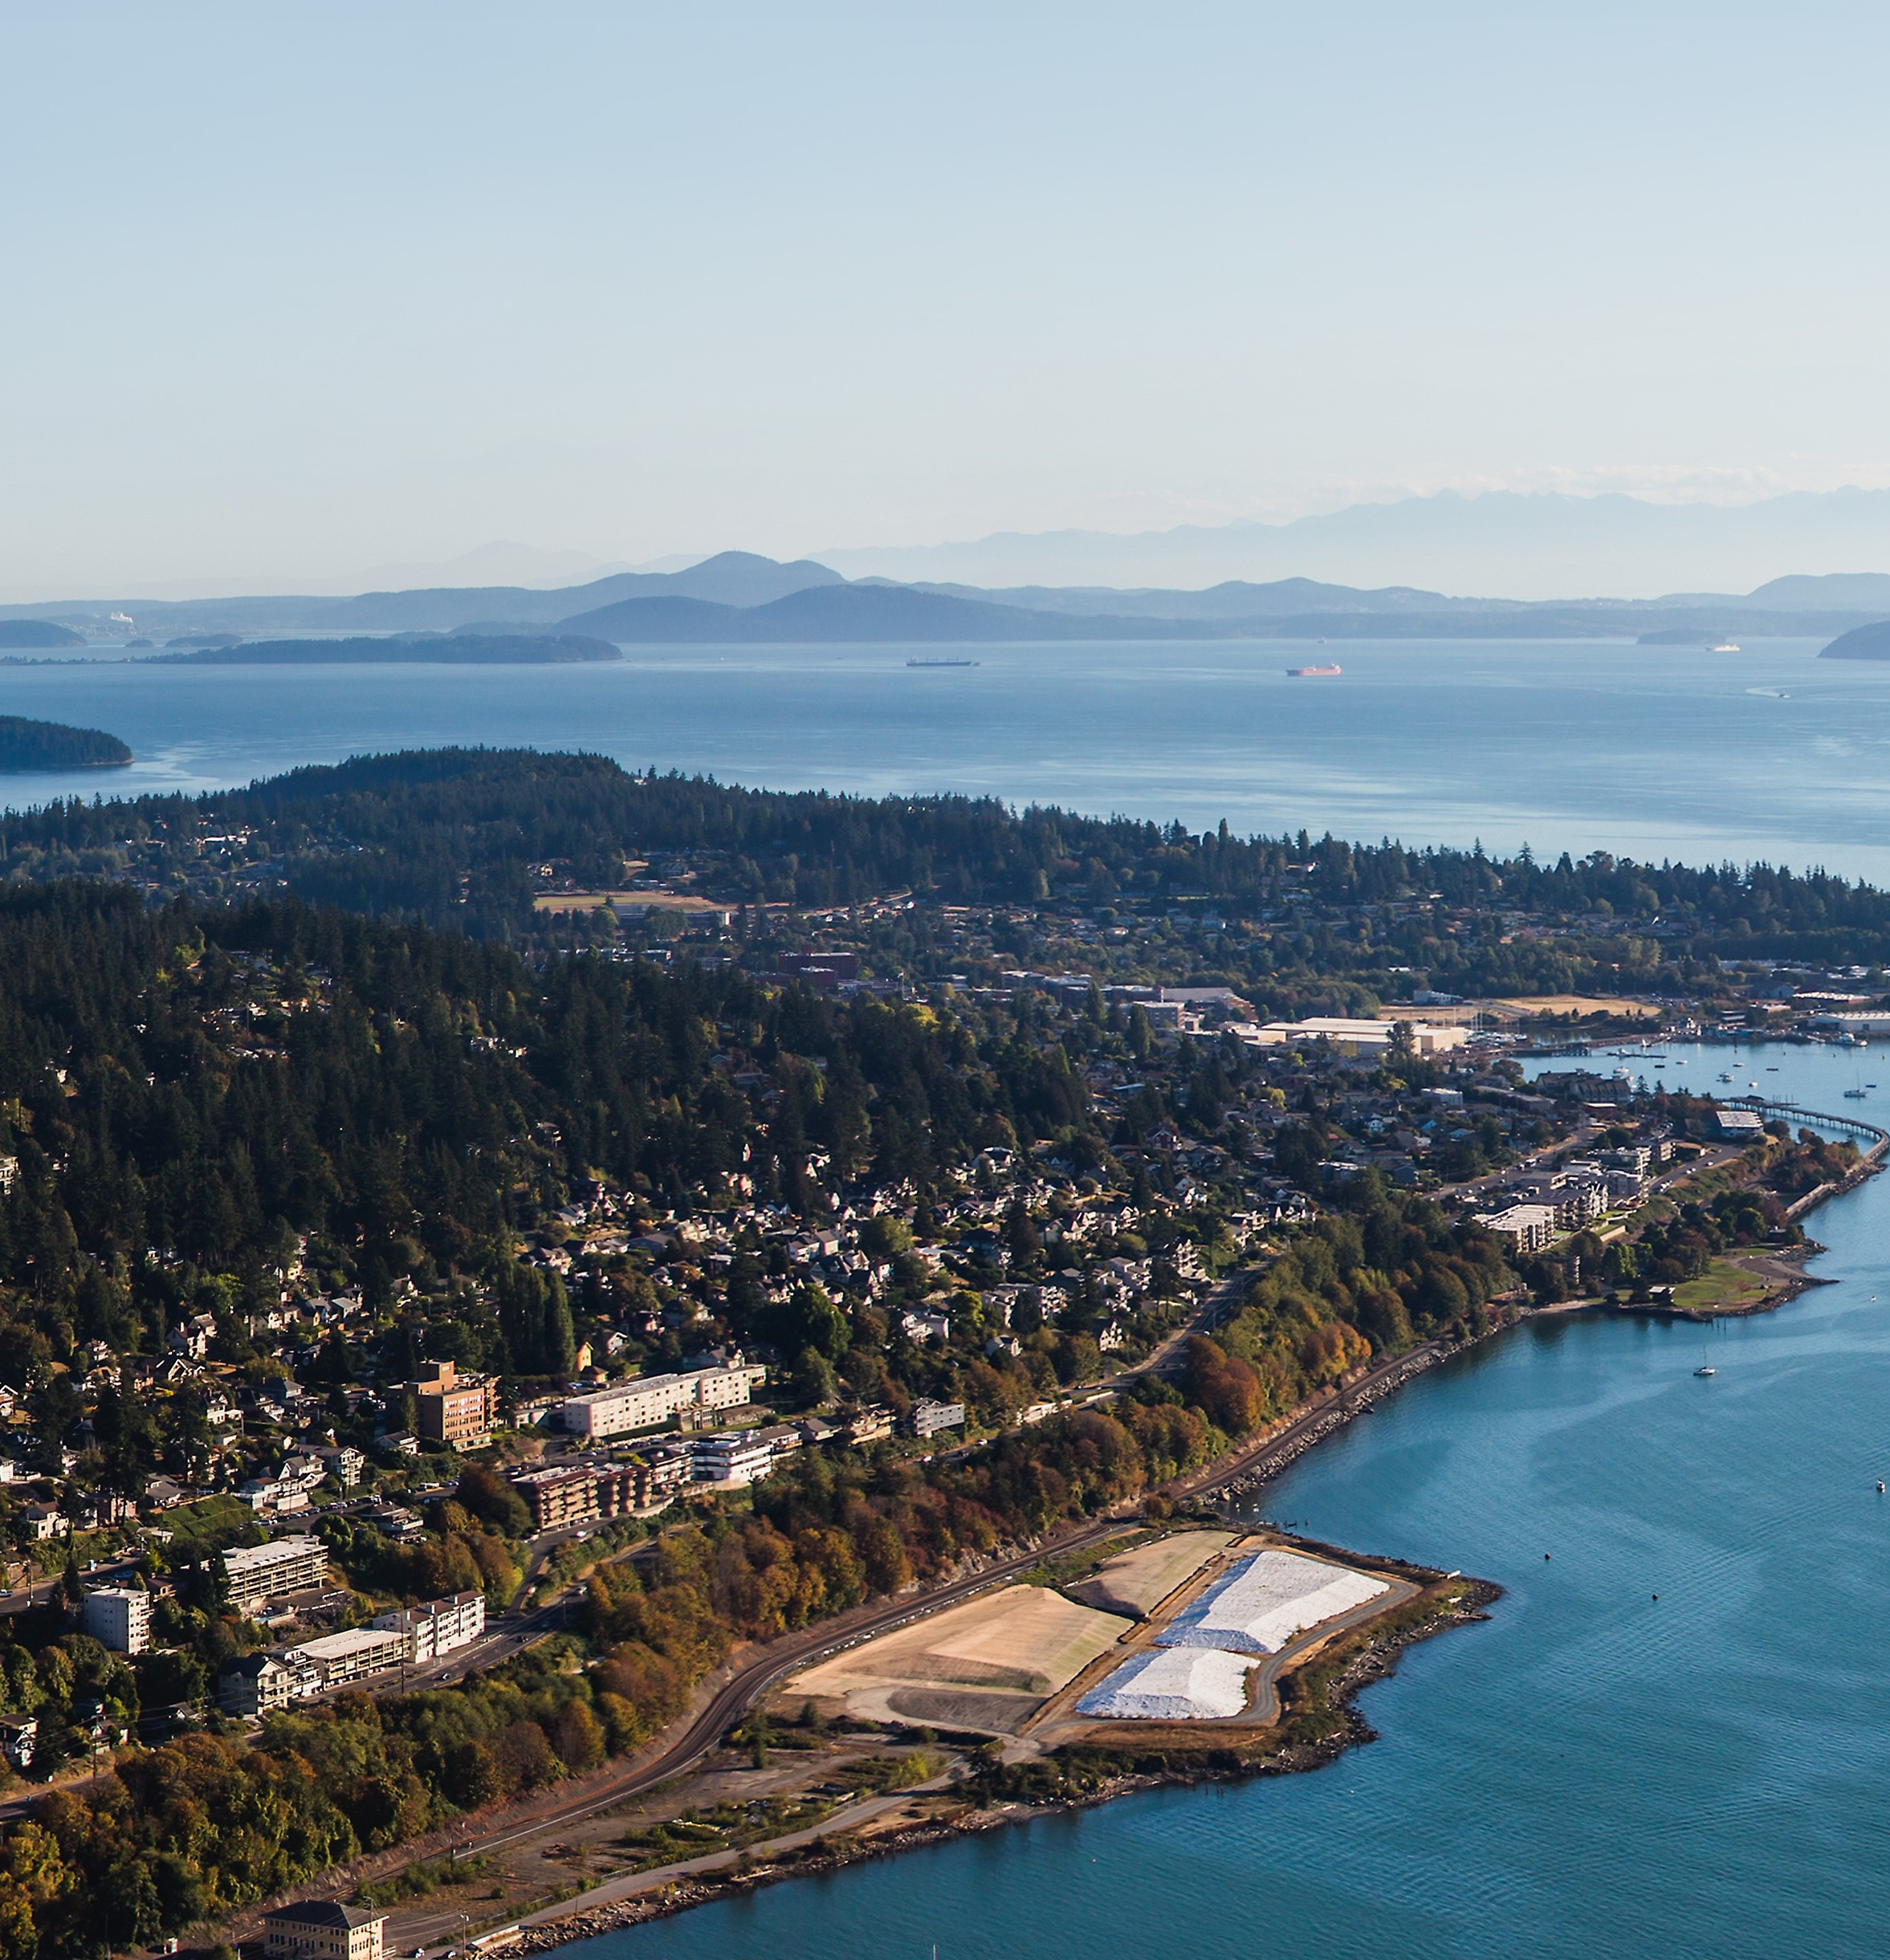 aerial view of WWU from Bellingham Bay